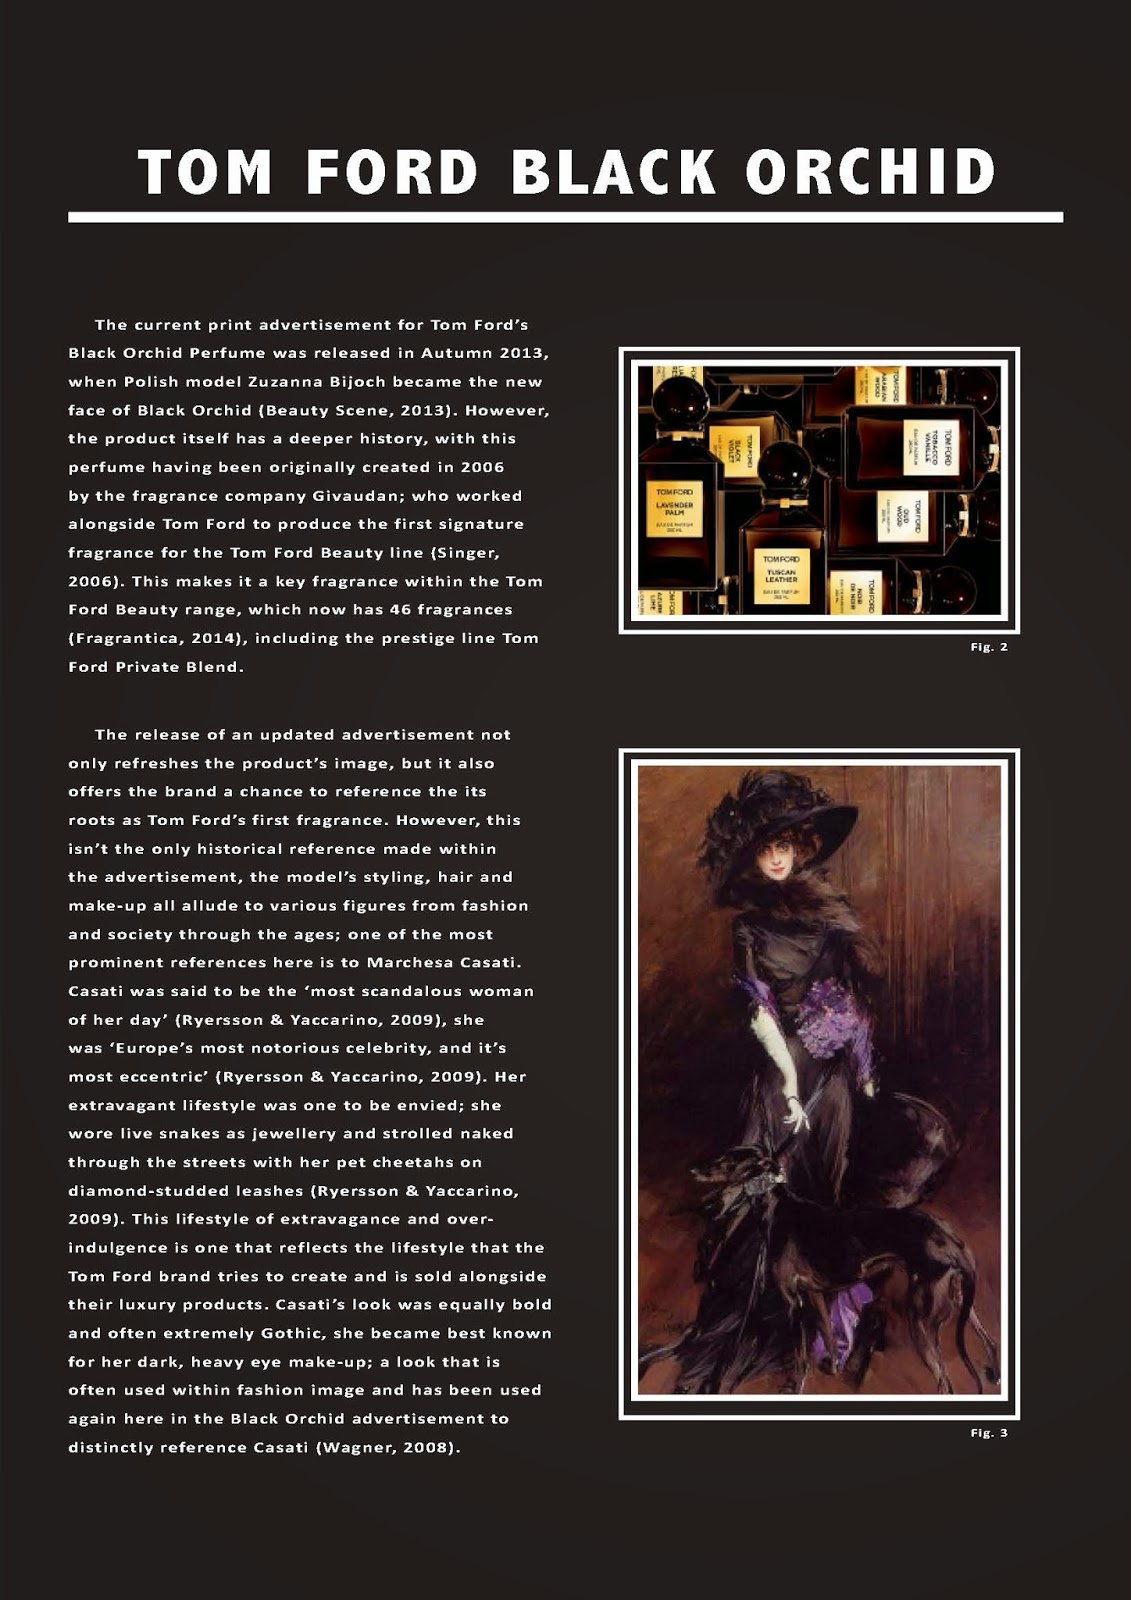 reflective journal 2014 tom ford black orchid fragrance advert analysis essay